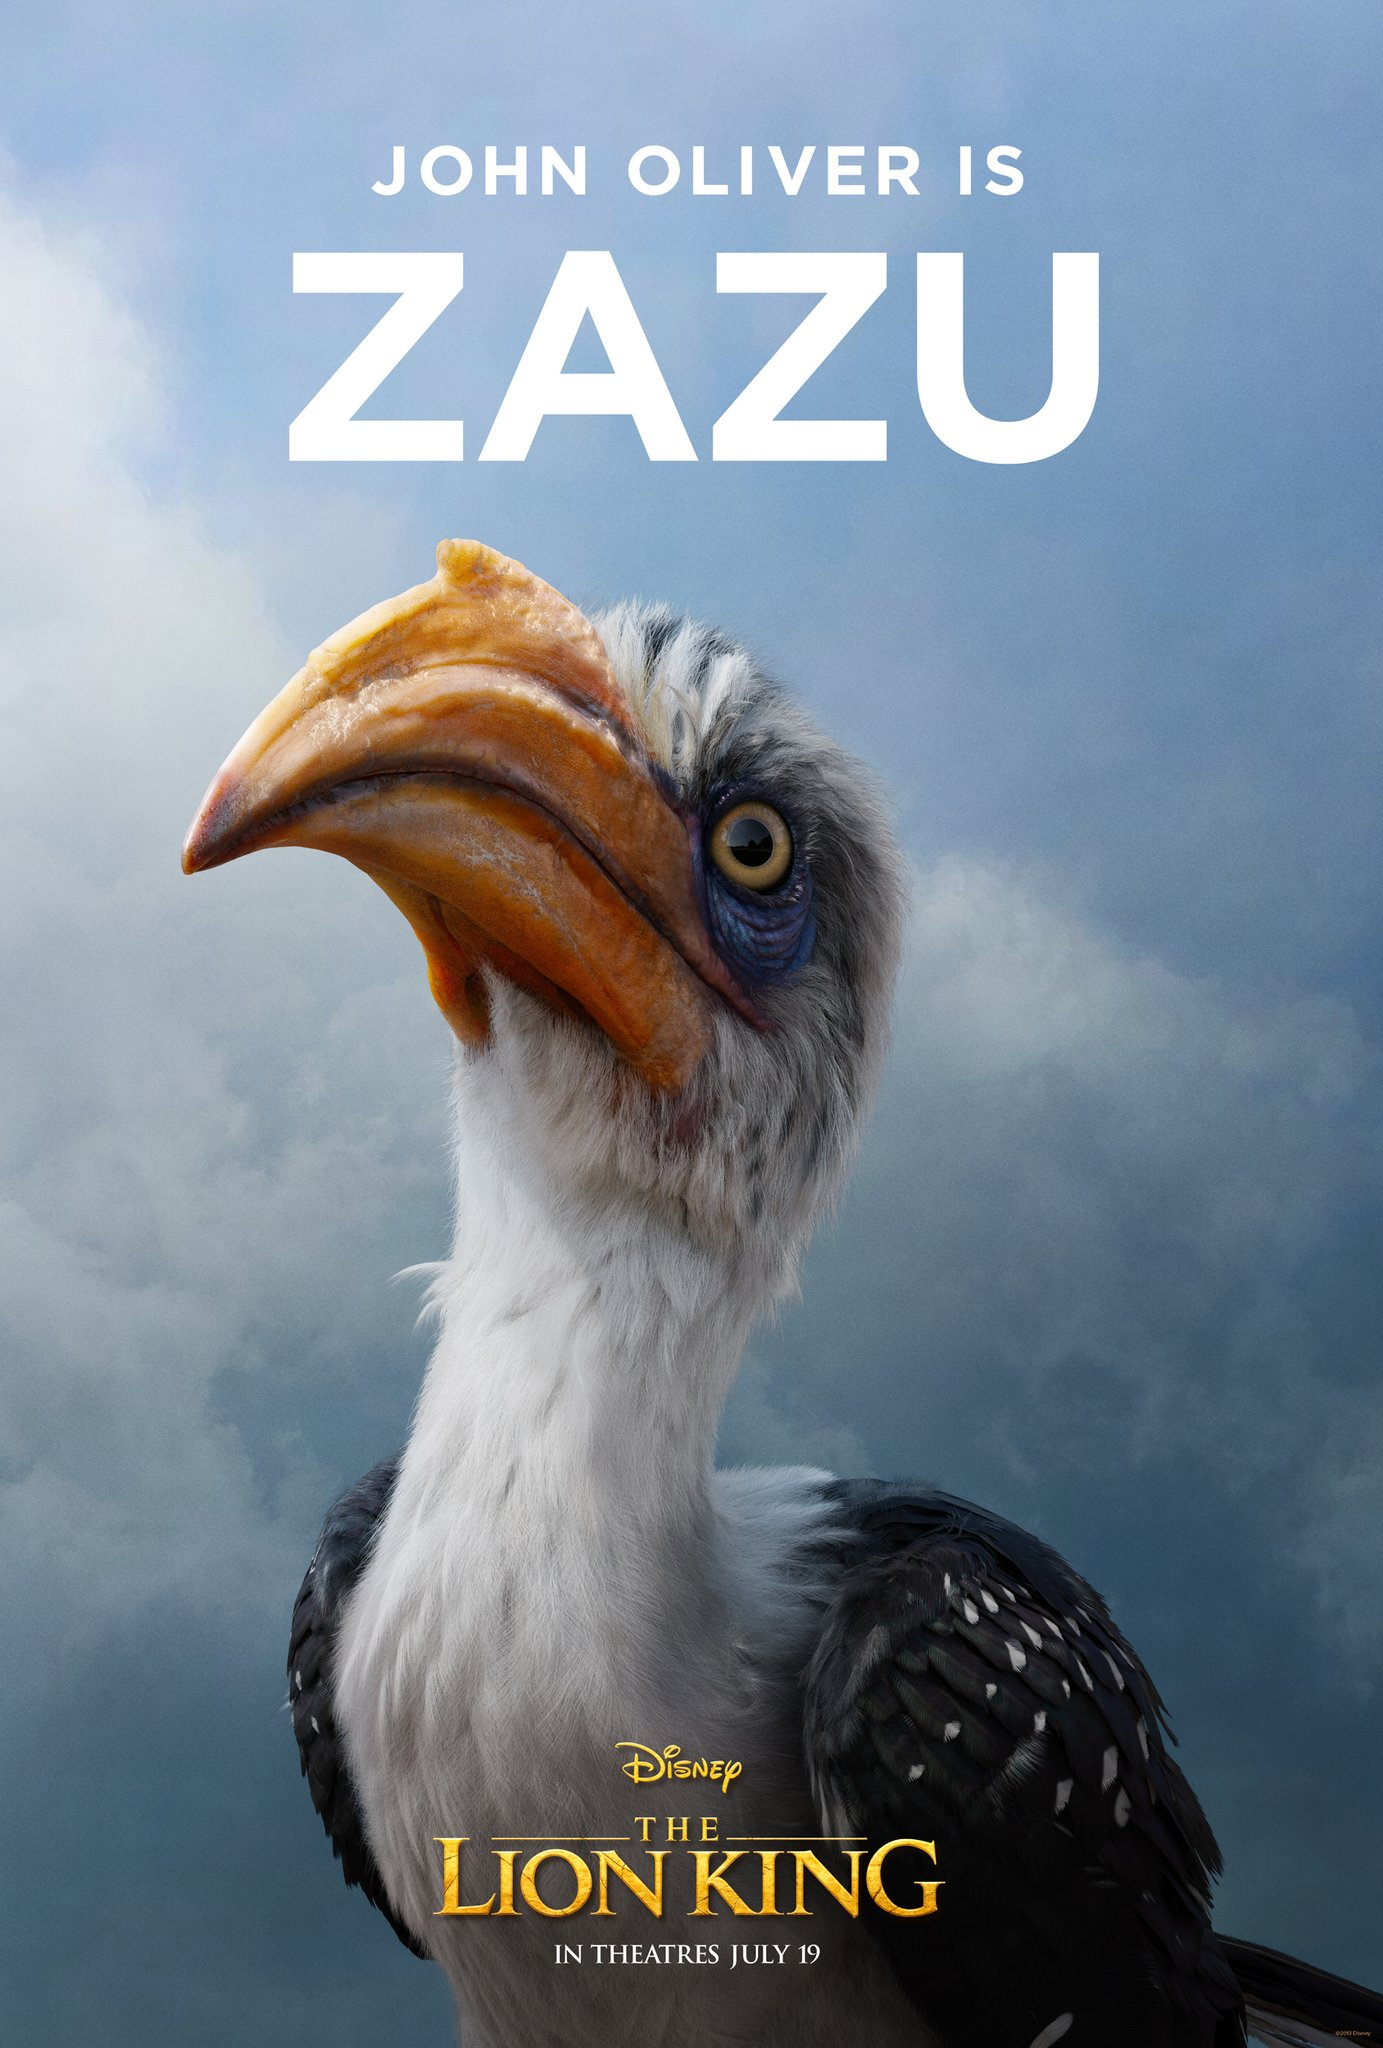 The Lion King Character Poster 08 - John Oliver Is Zazu